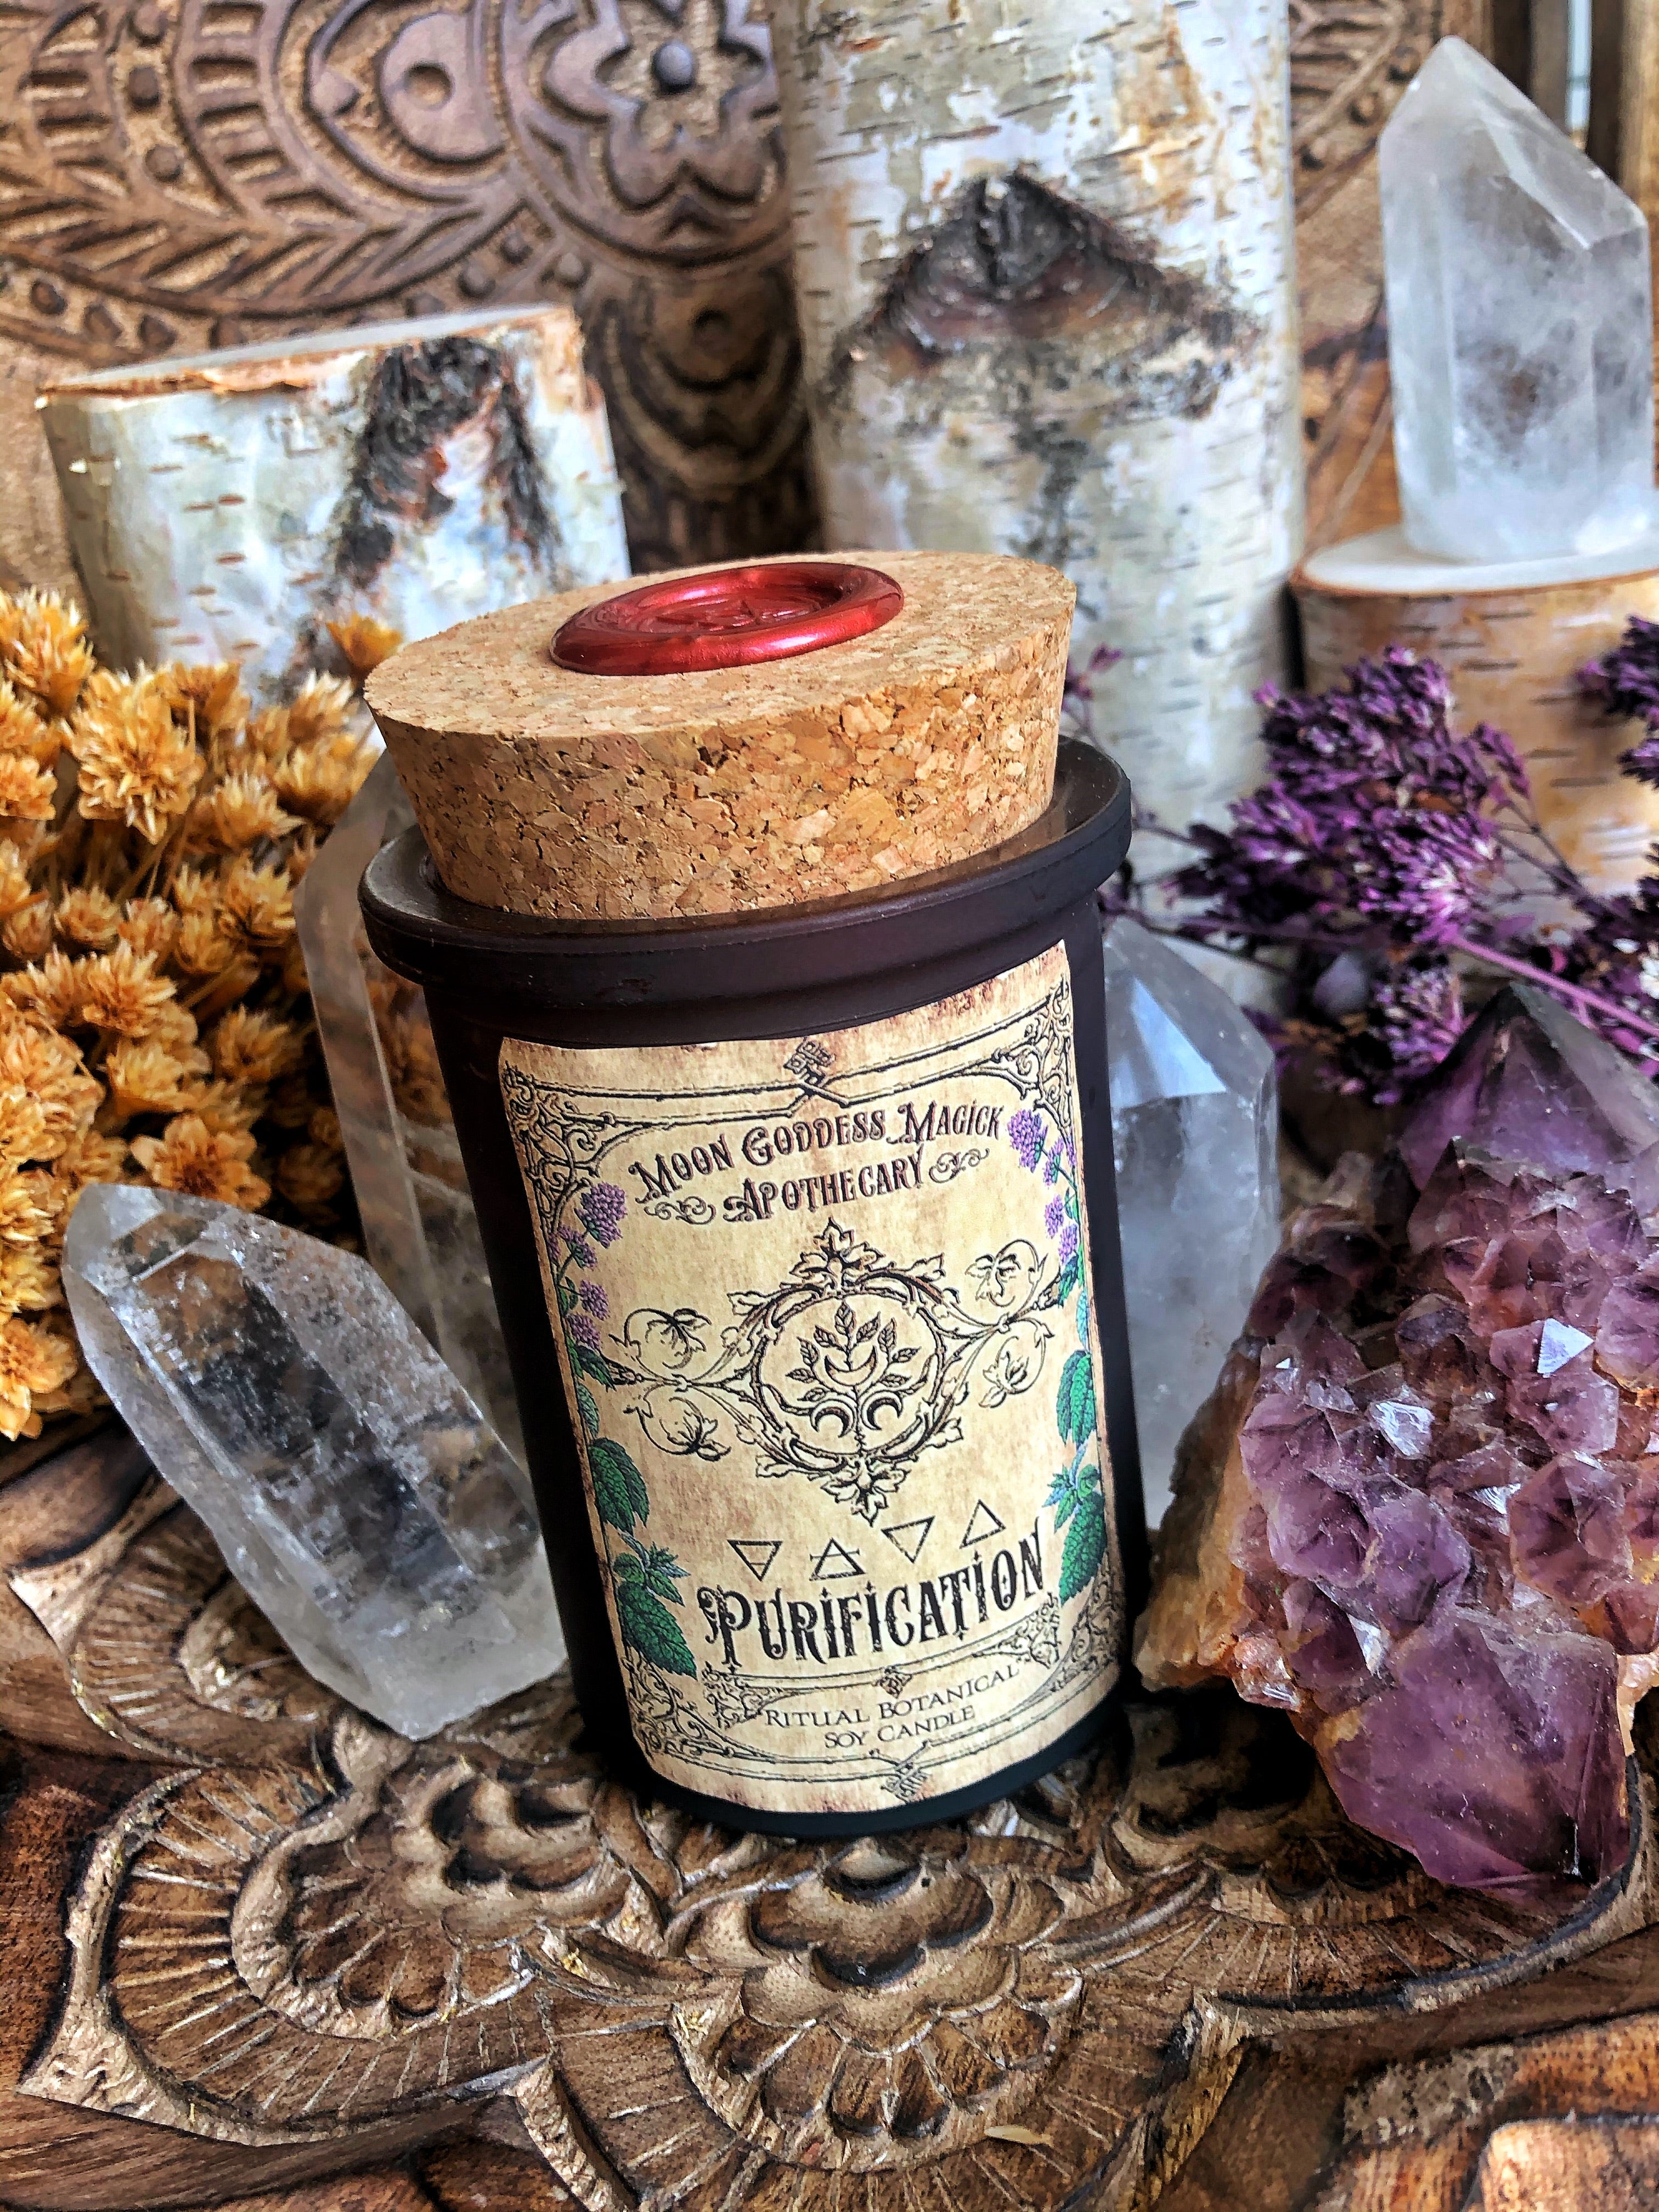 Purification Spell Candle /// Ritual Candle /// Incantation on the back Spell Candle for your Purification Rituals /// Aura Cleanse~ 6oz Amber Glass /// 30 hour burn - Moon Goddess Magick Apothecary